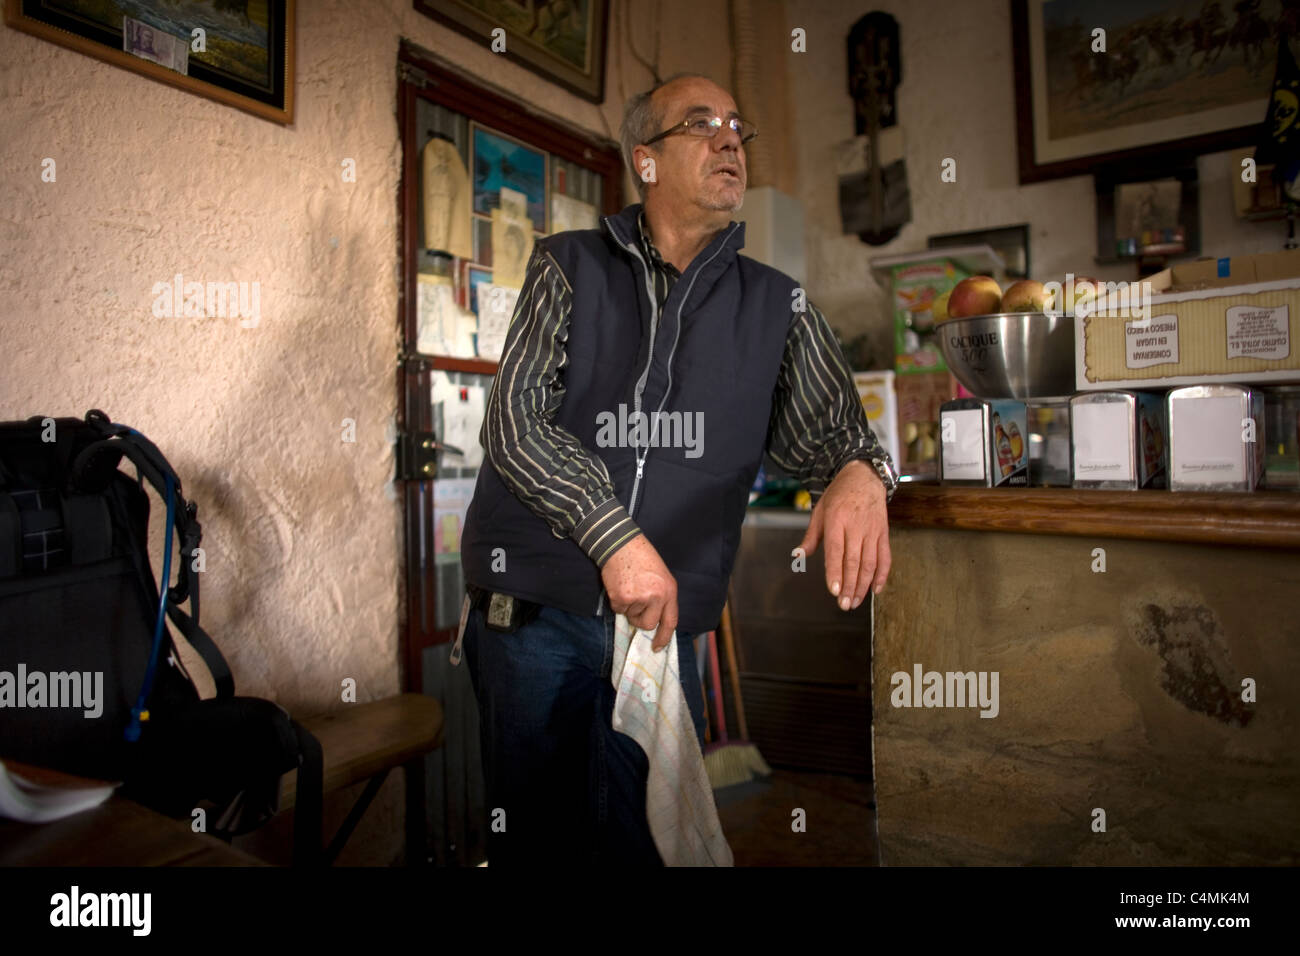 Ramiro, owner of the Cowboy Bar, speaks with customers in the French Way, Way of Saint James,El Ganso, Castilla - Stock Image